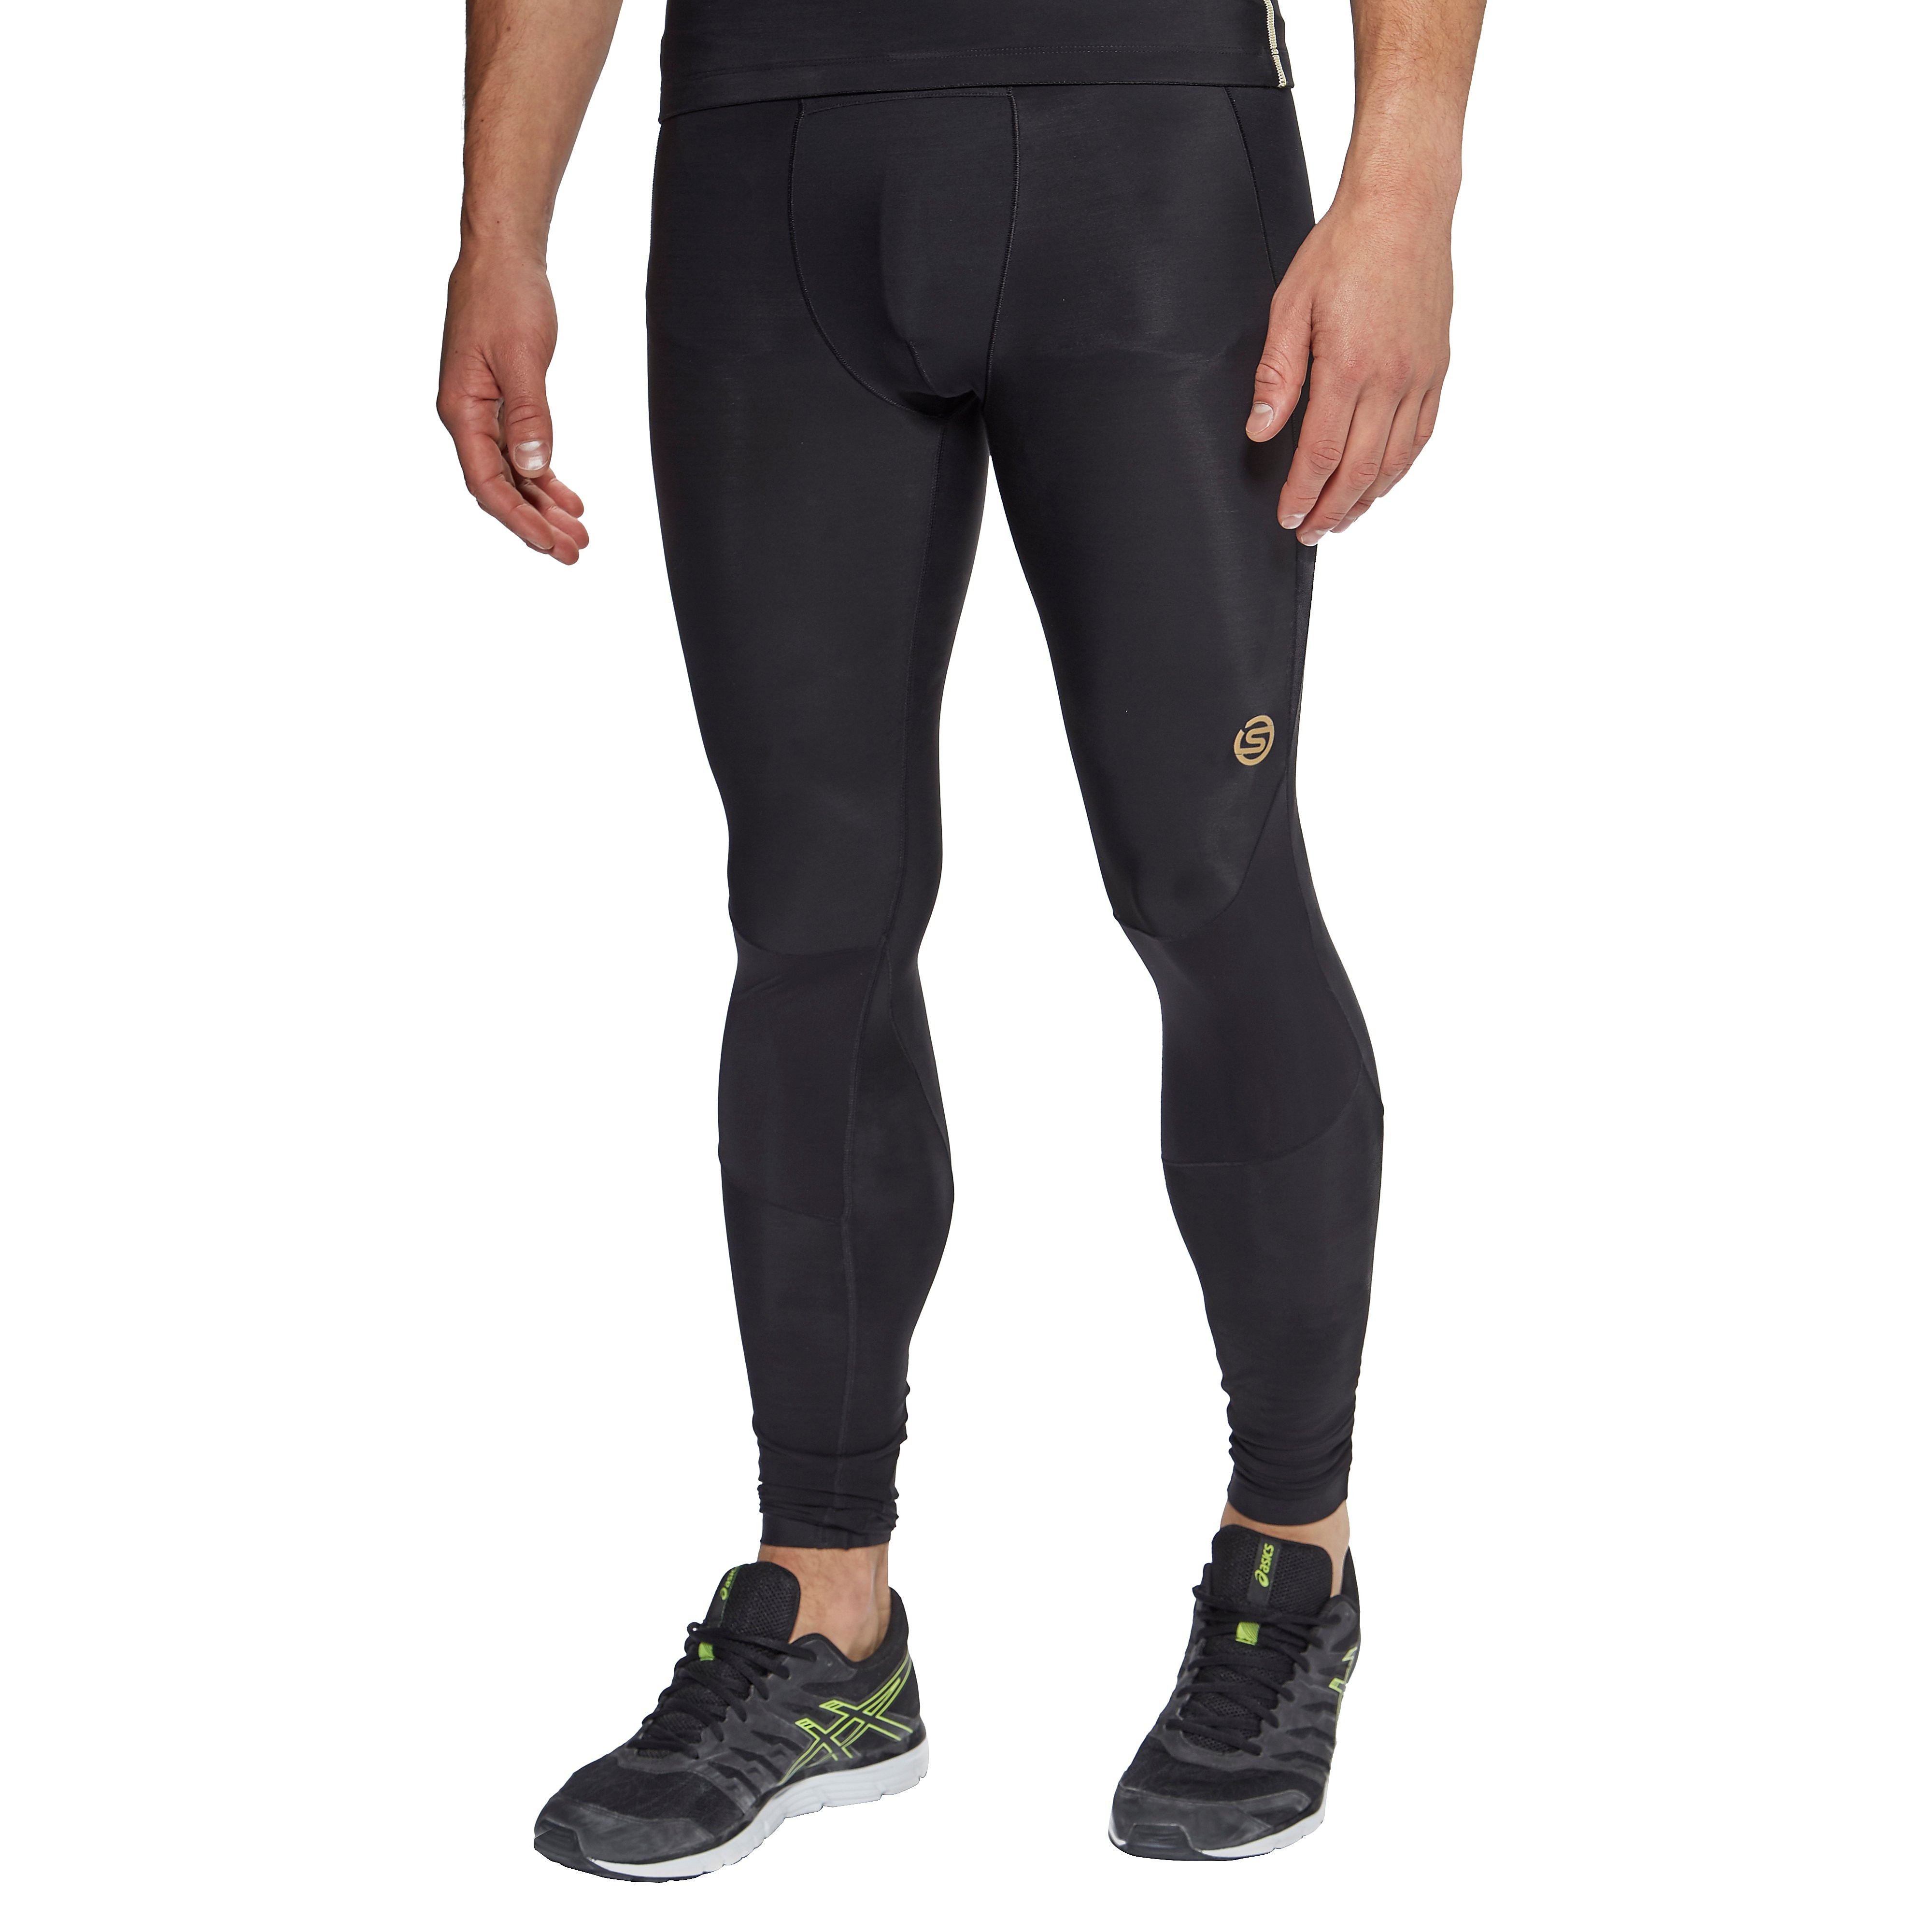 Skins A400 Men's Compression Long Tights